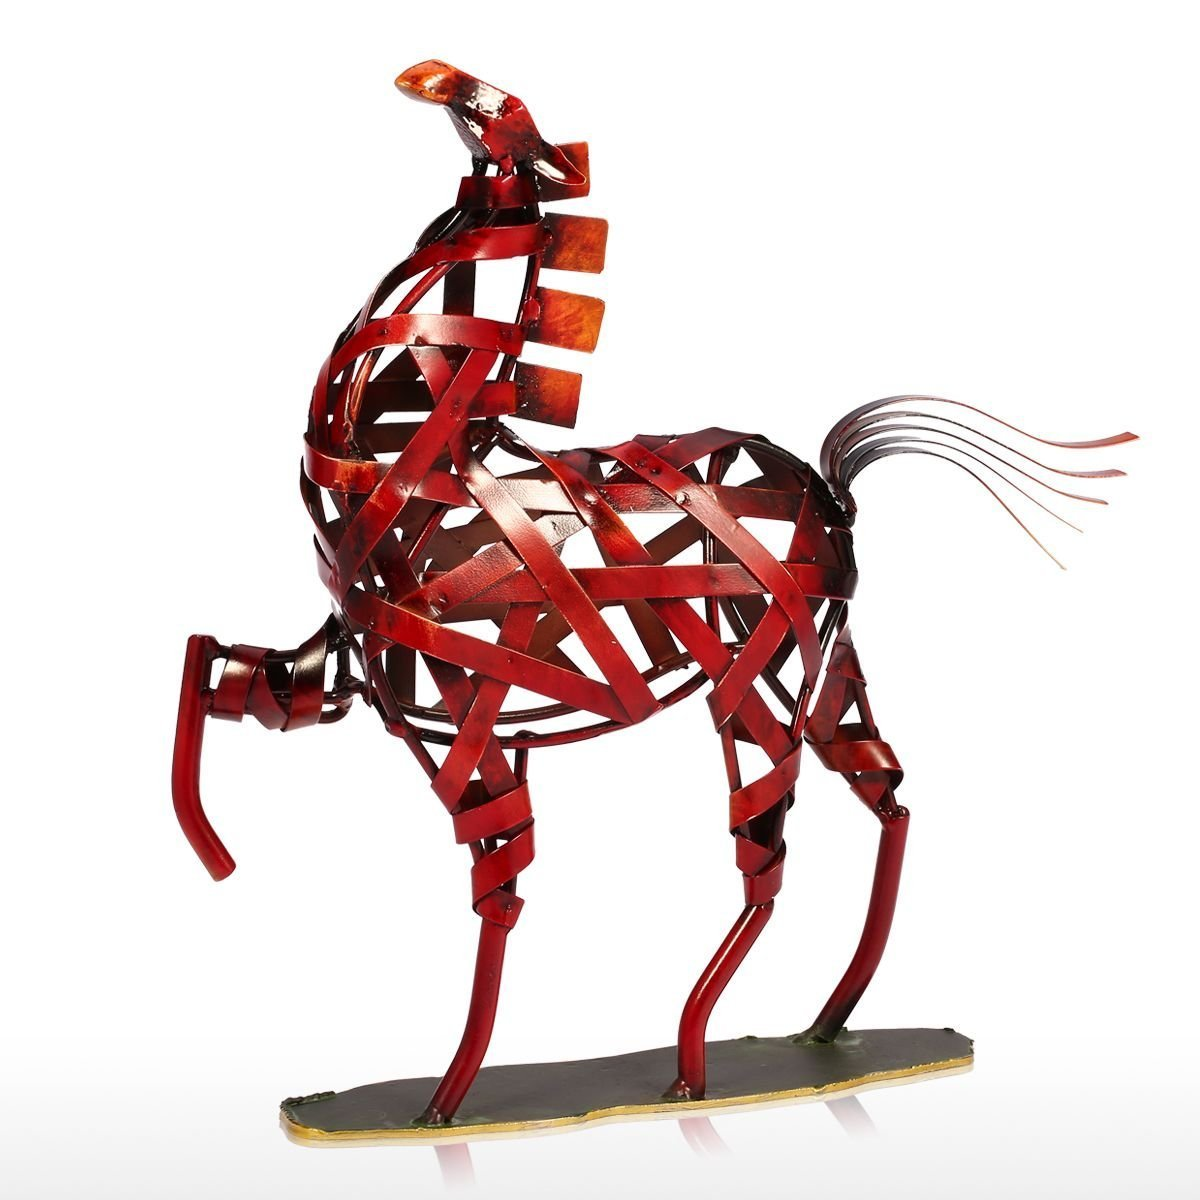 Tooarts Metal Weaving Horse Modern Sculpture Home Decoration Furnishing Handicrafts